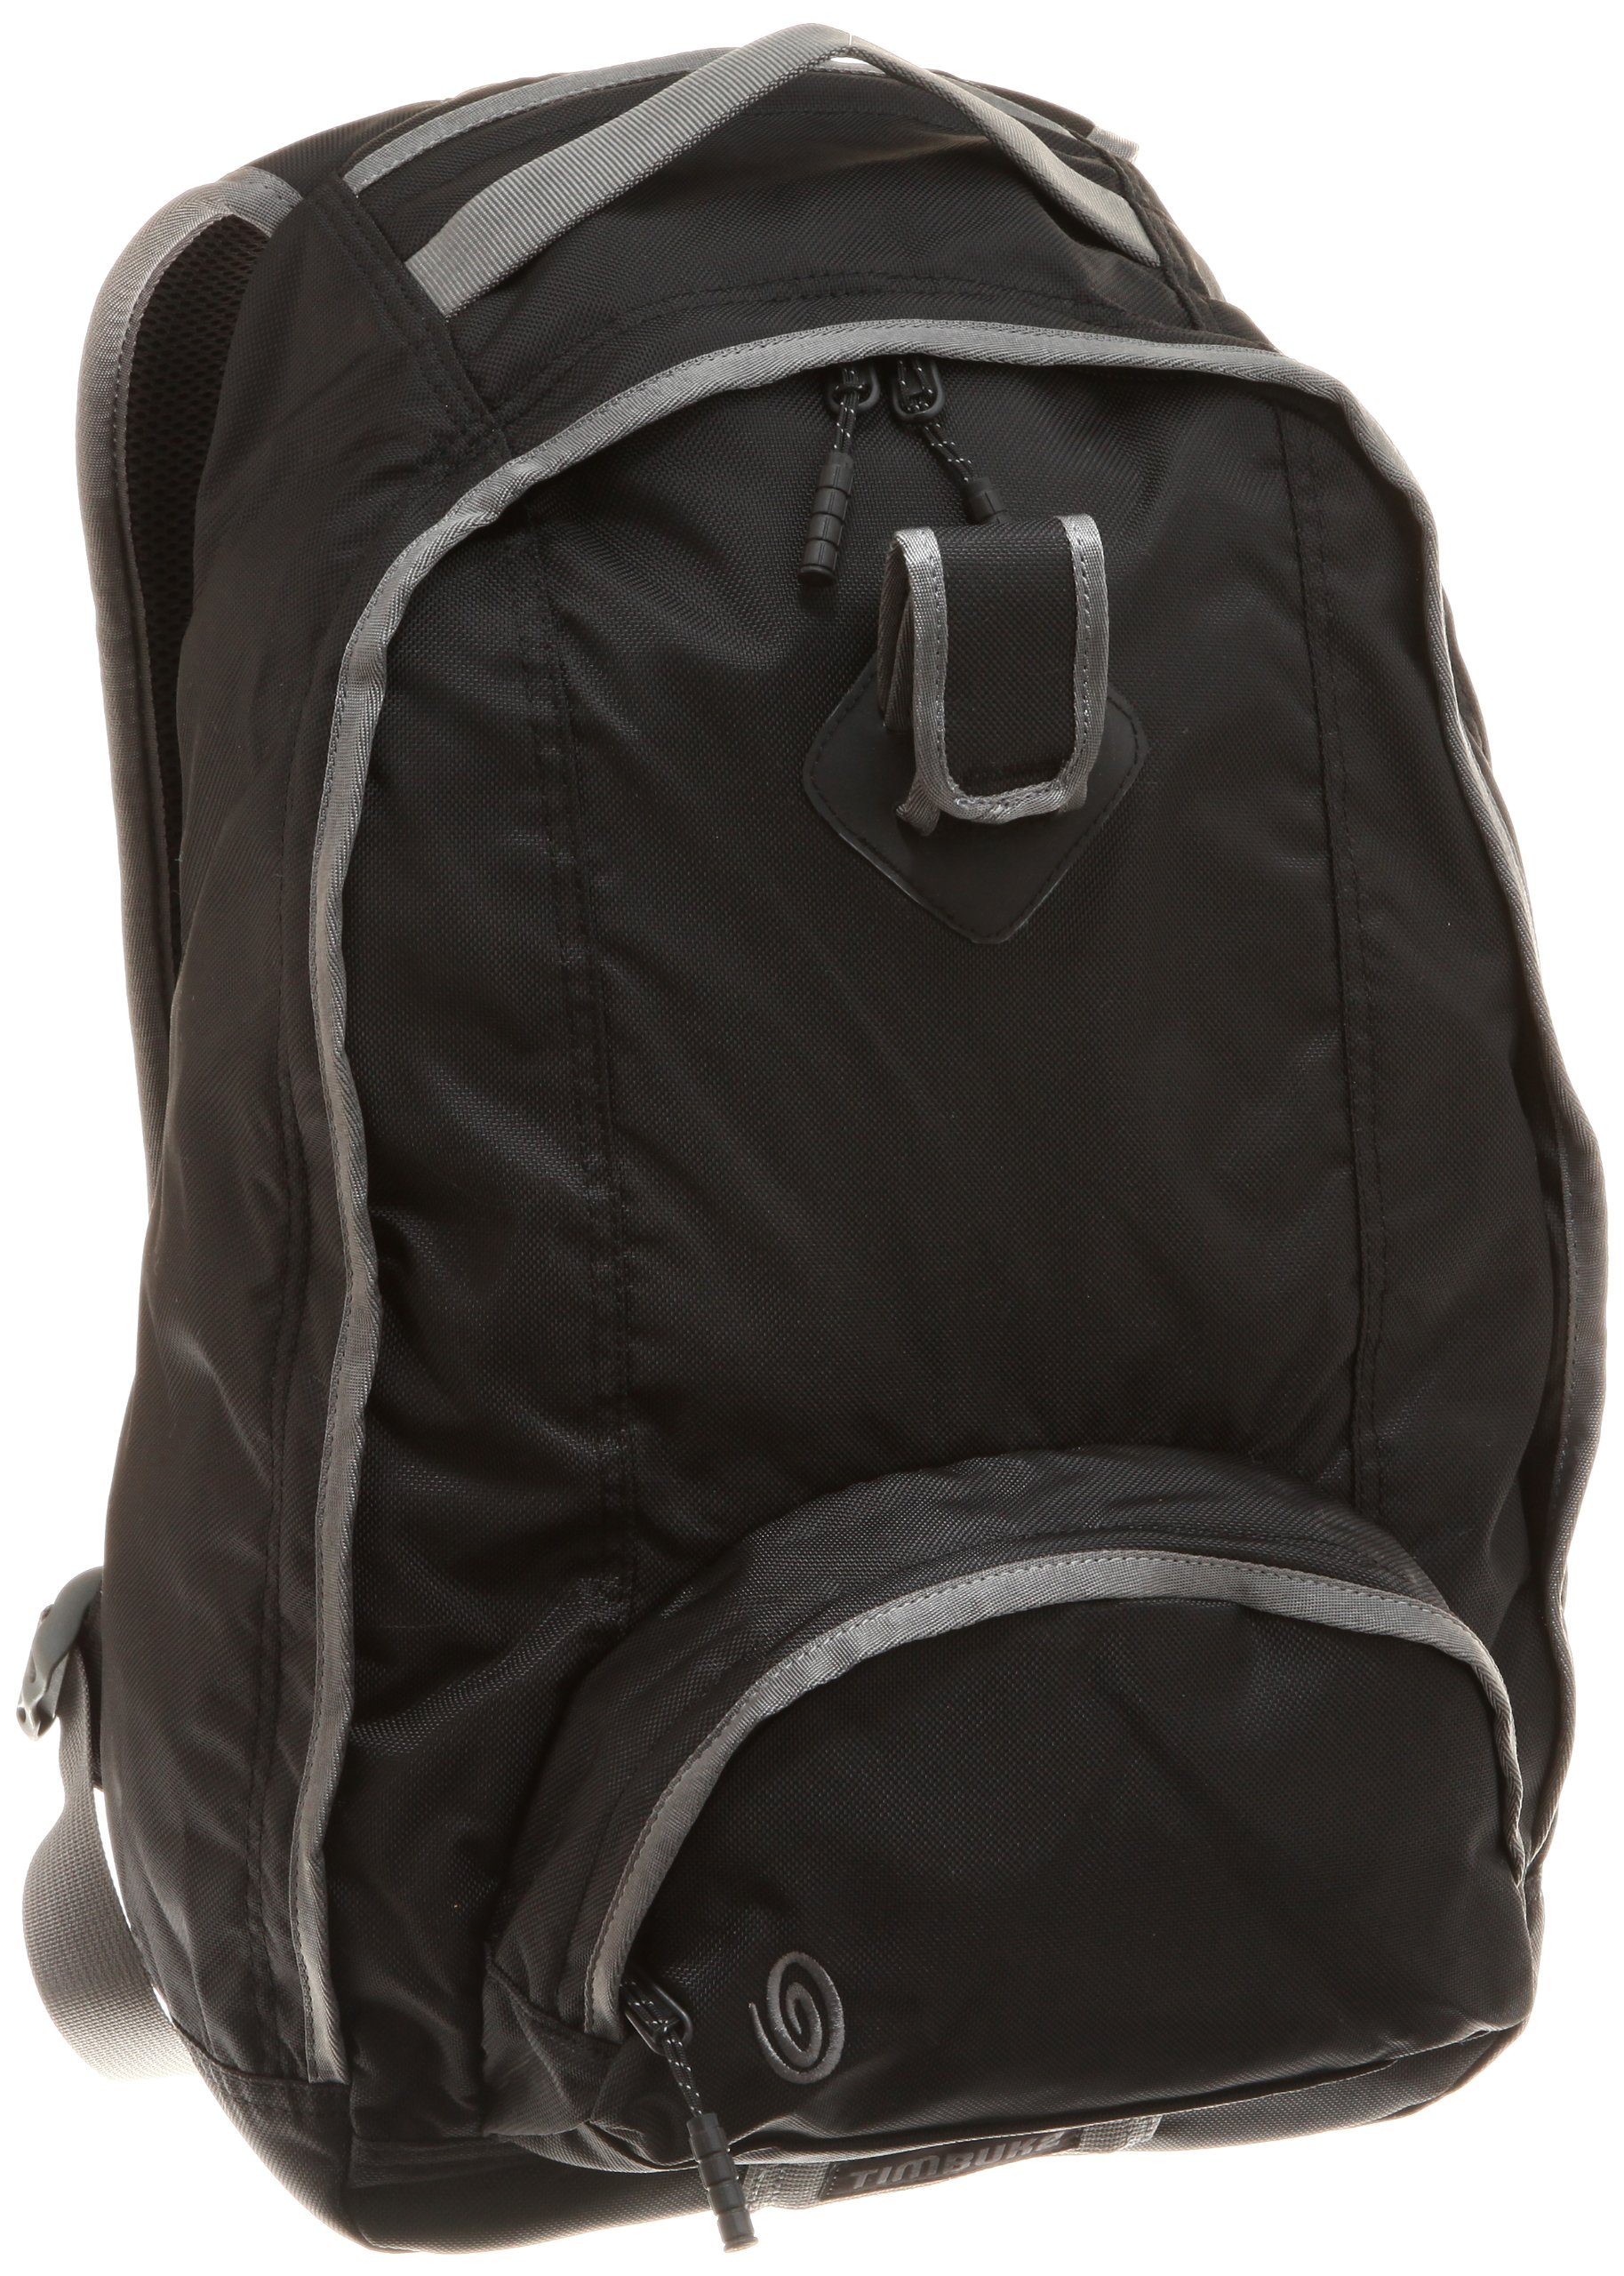 Timbuk2 Ikkyu Laptop Backpack